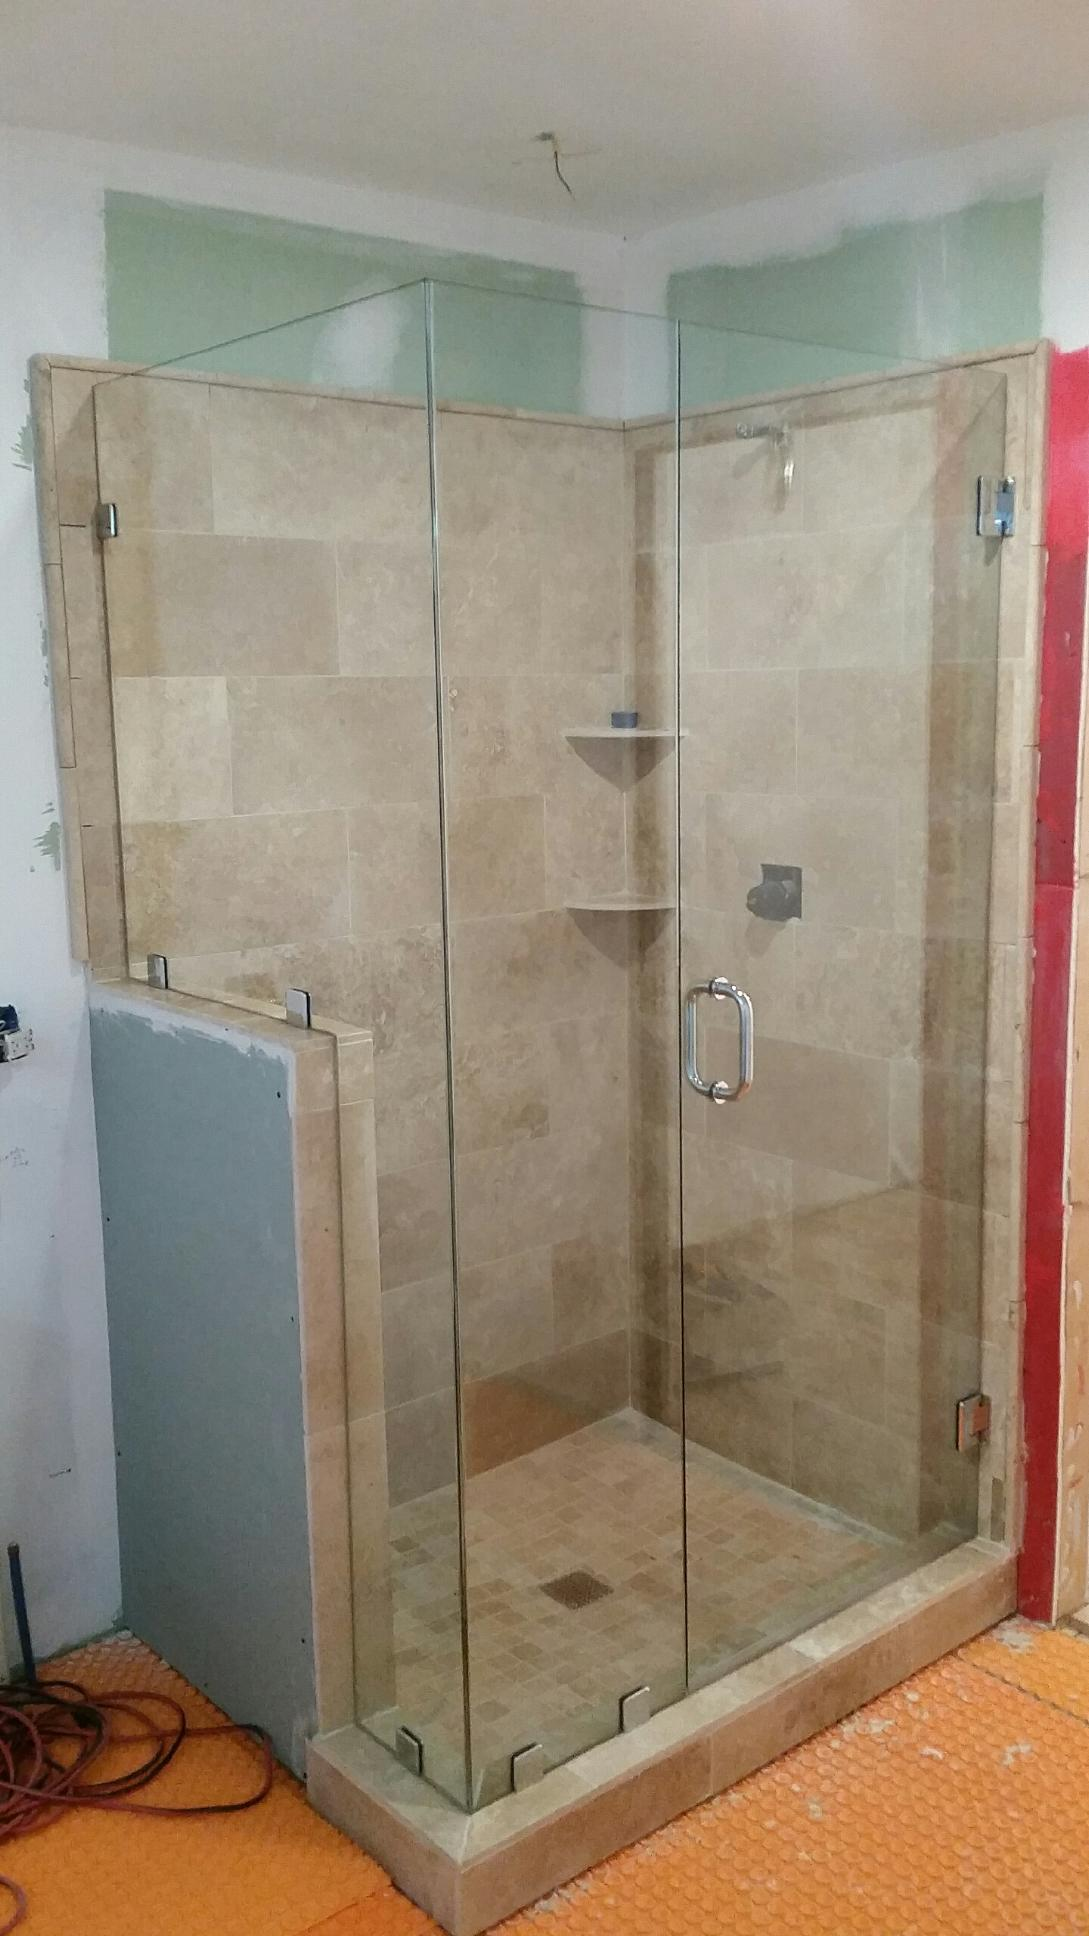 Frameless shower doors custom glass shower doors atlanta ga custom shower installation with frameless doors near atlanta roswell and sandy springs georgia beveled frameless glass planetlyrics